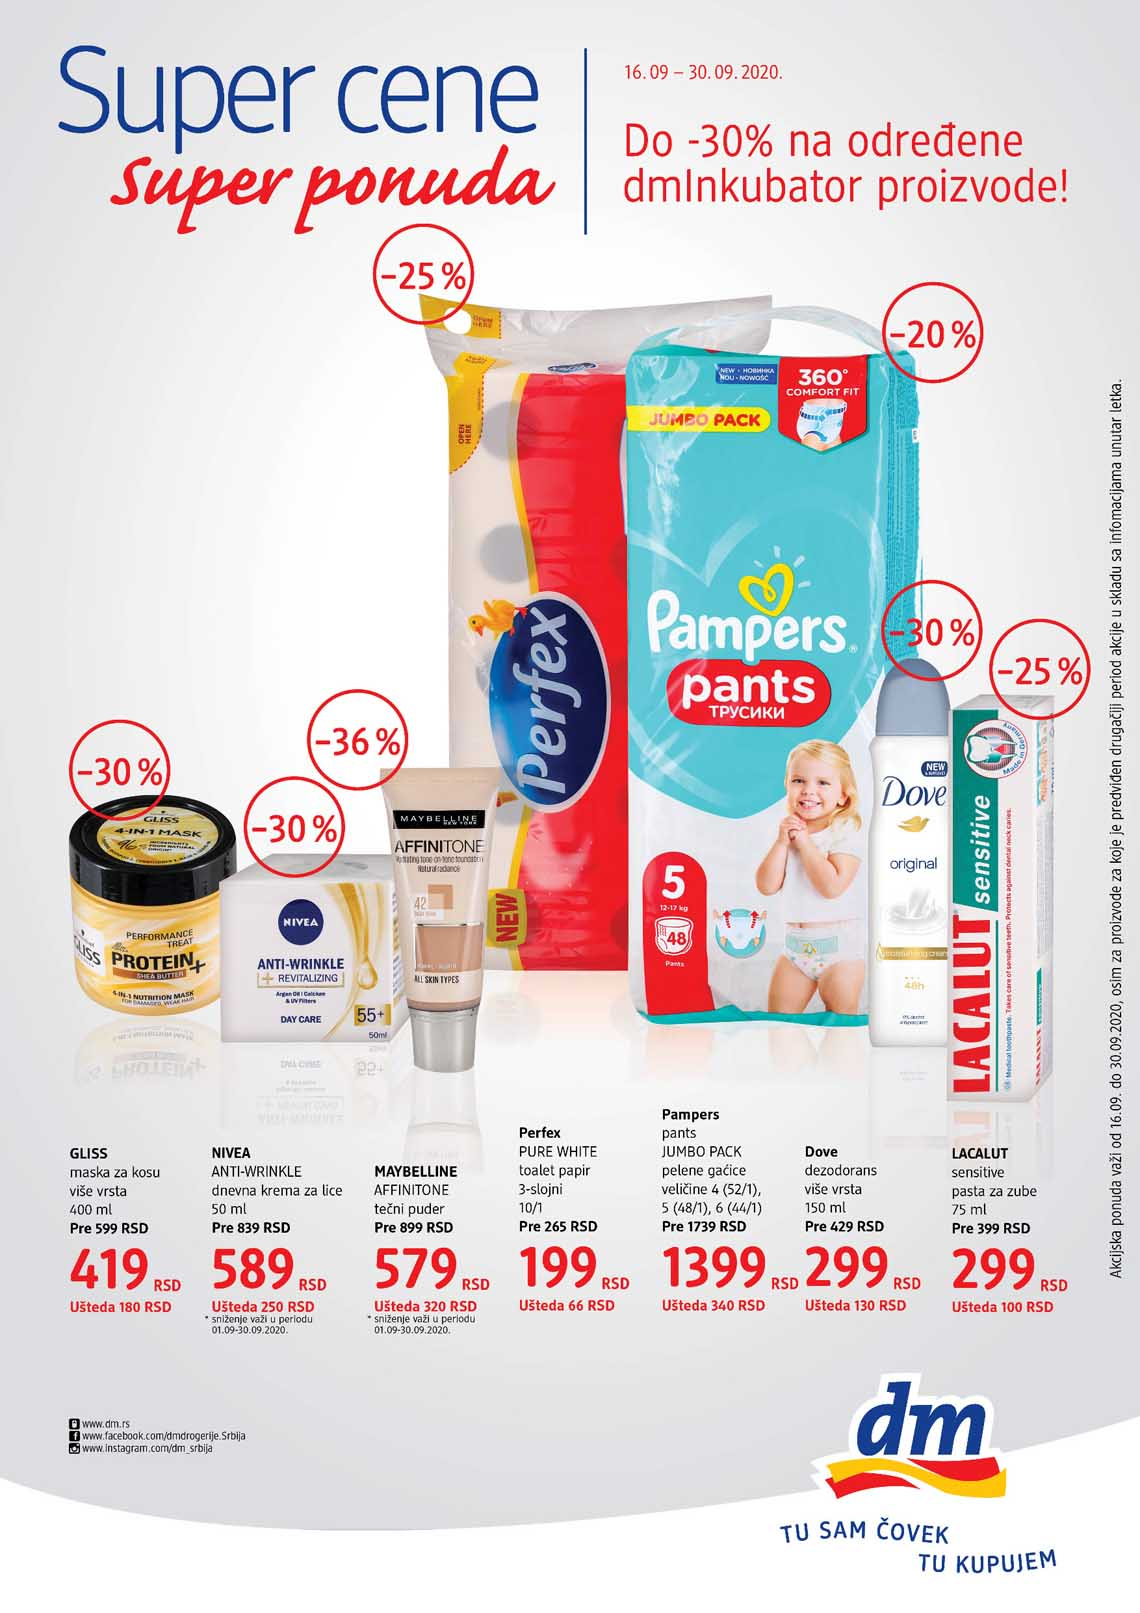 dm EXPRESS Katalog - Akcija do 30.09.2020.